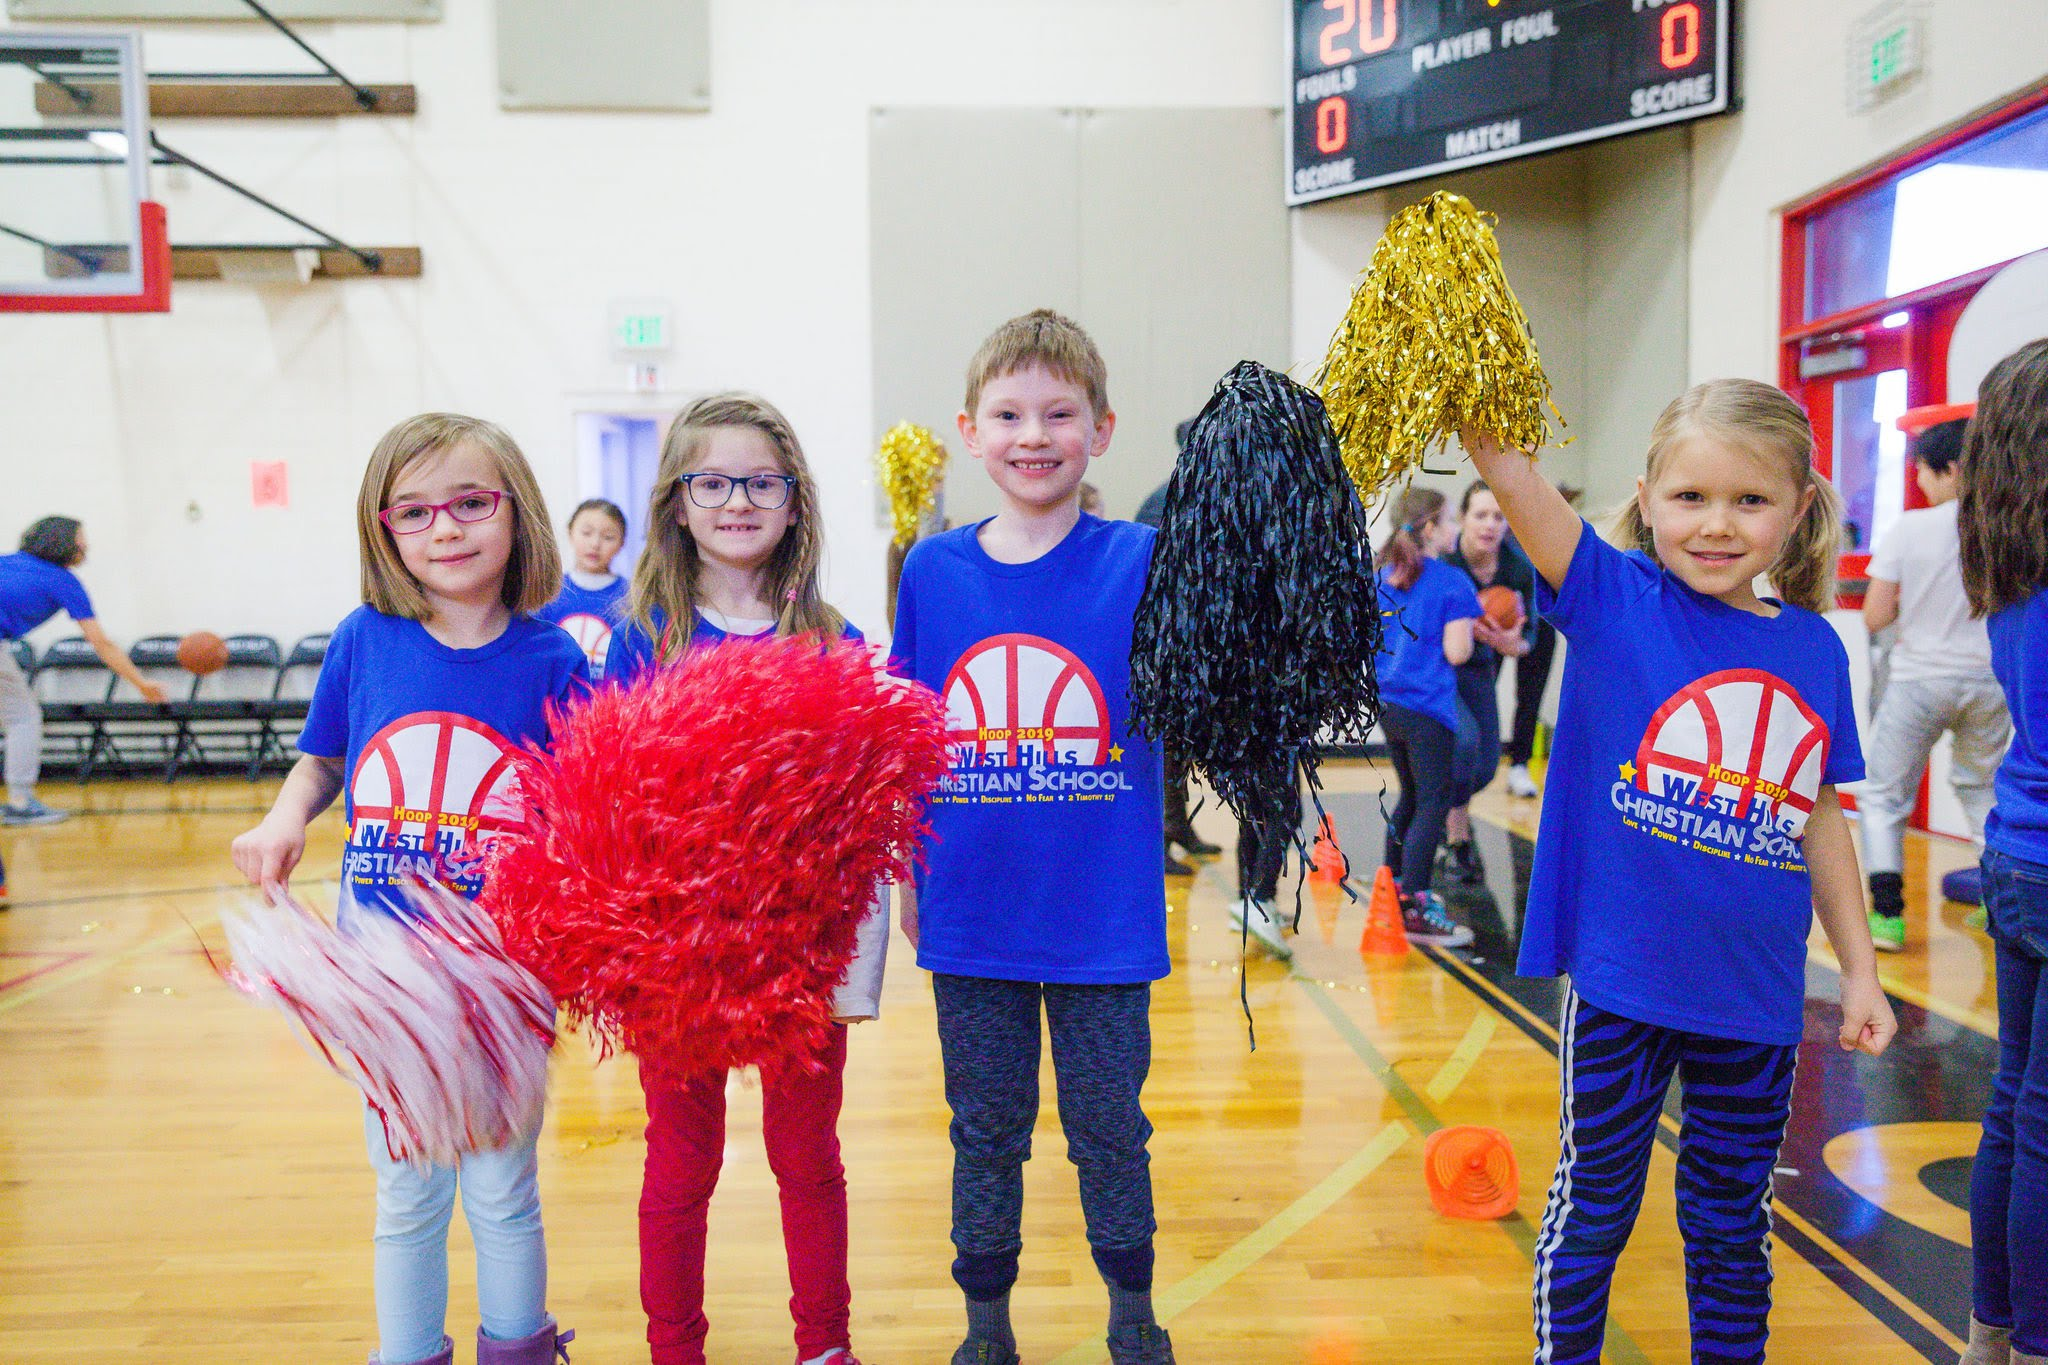 Student cheering for Hoop-a-thon fundraiser